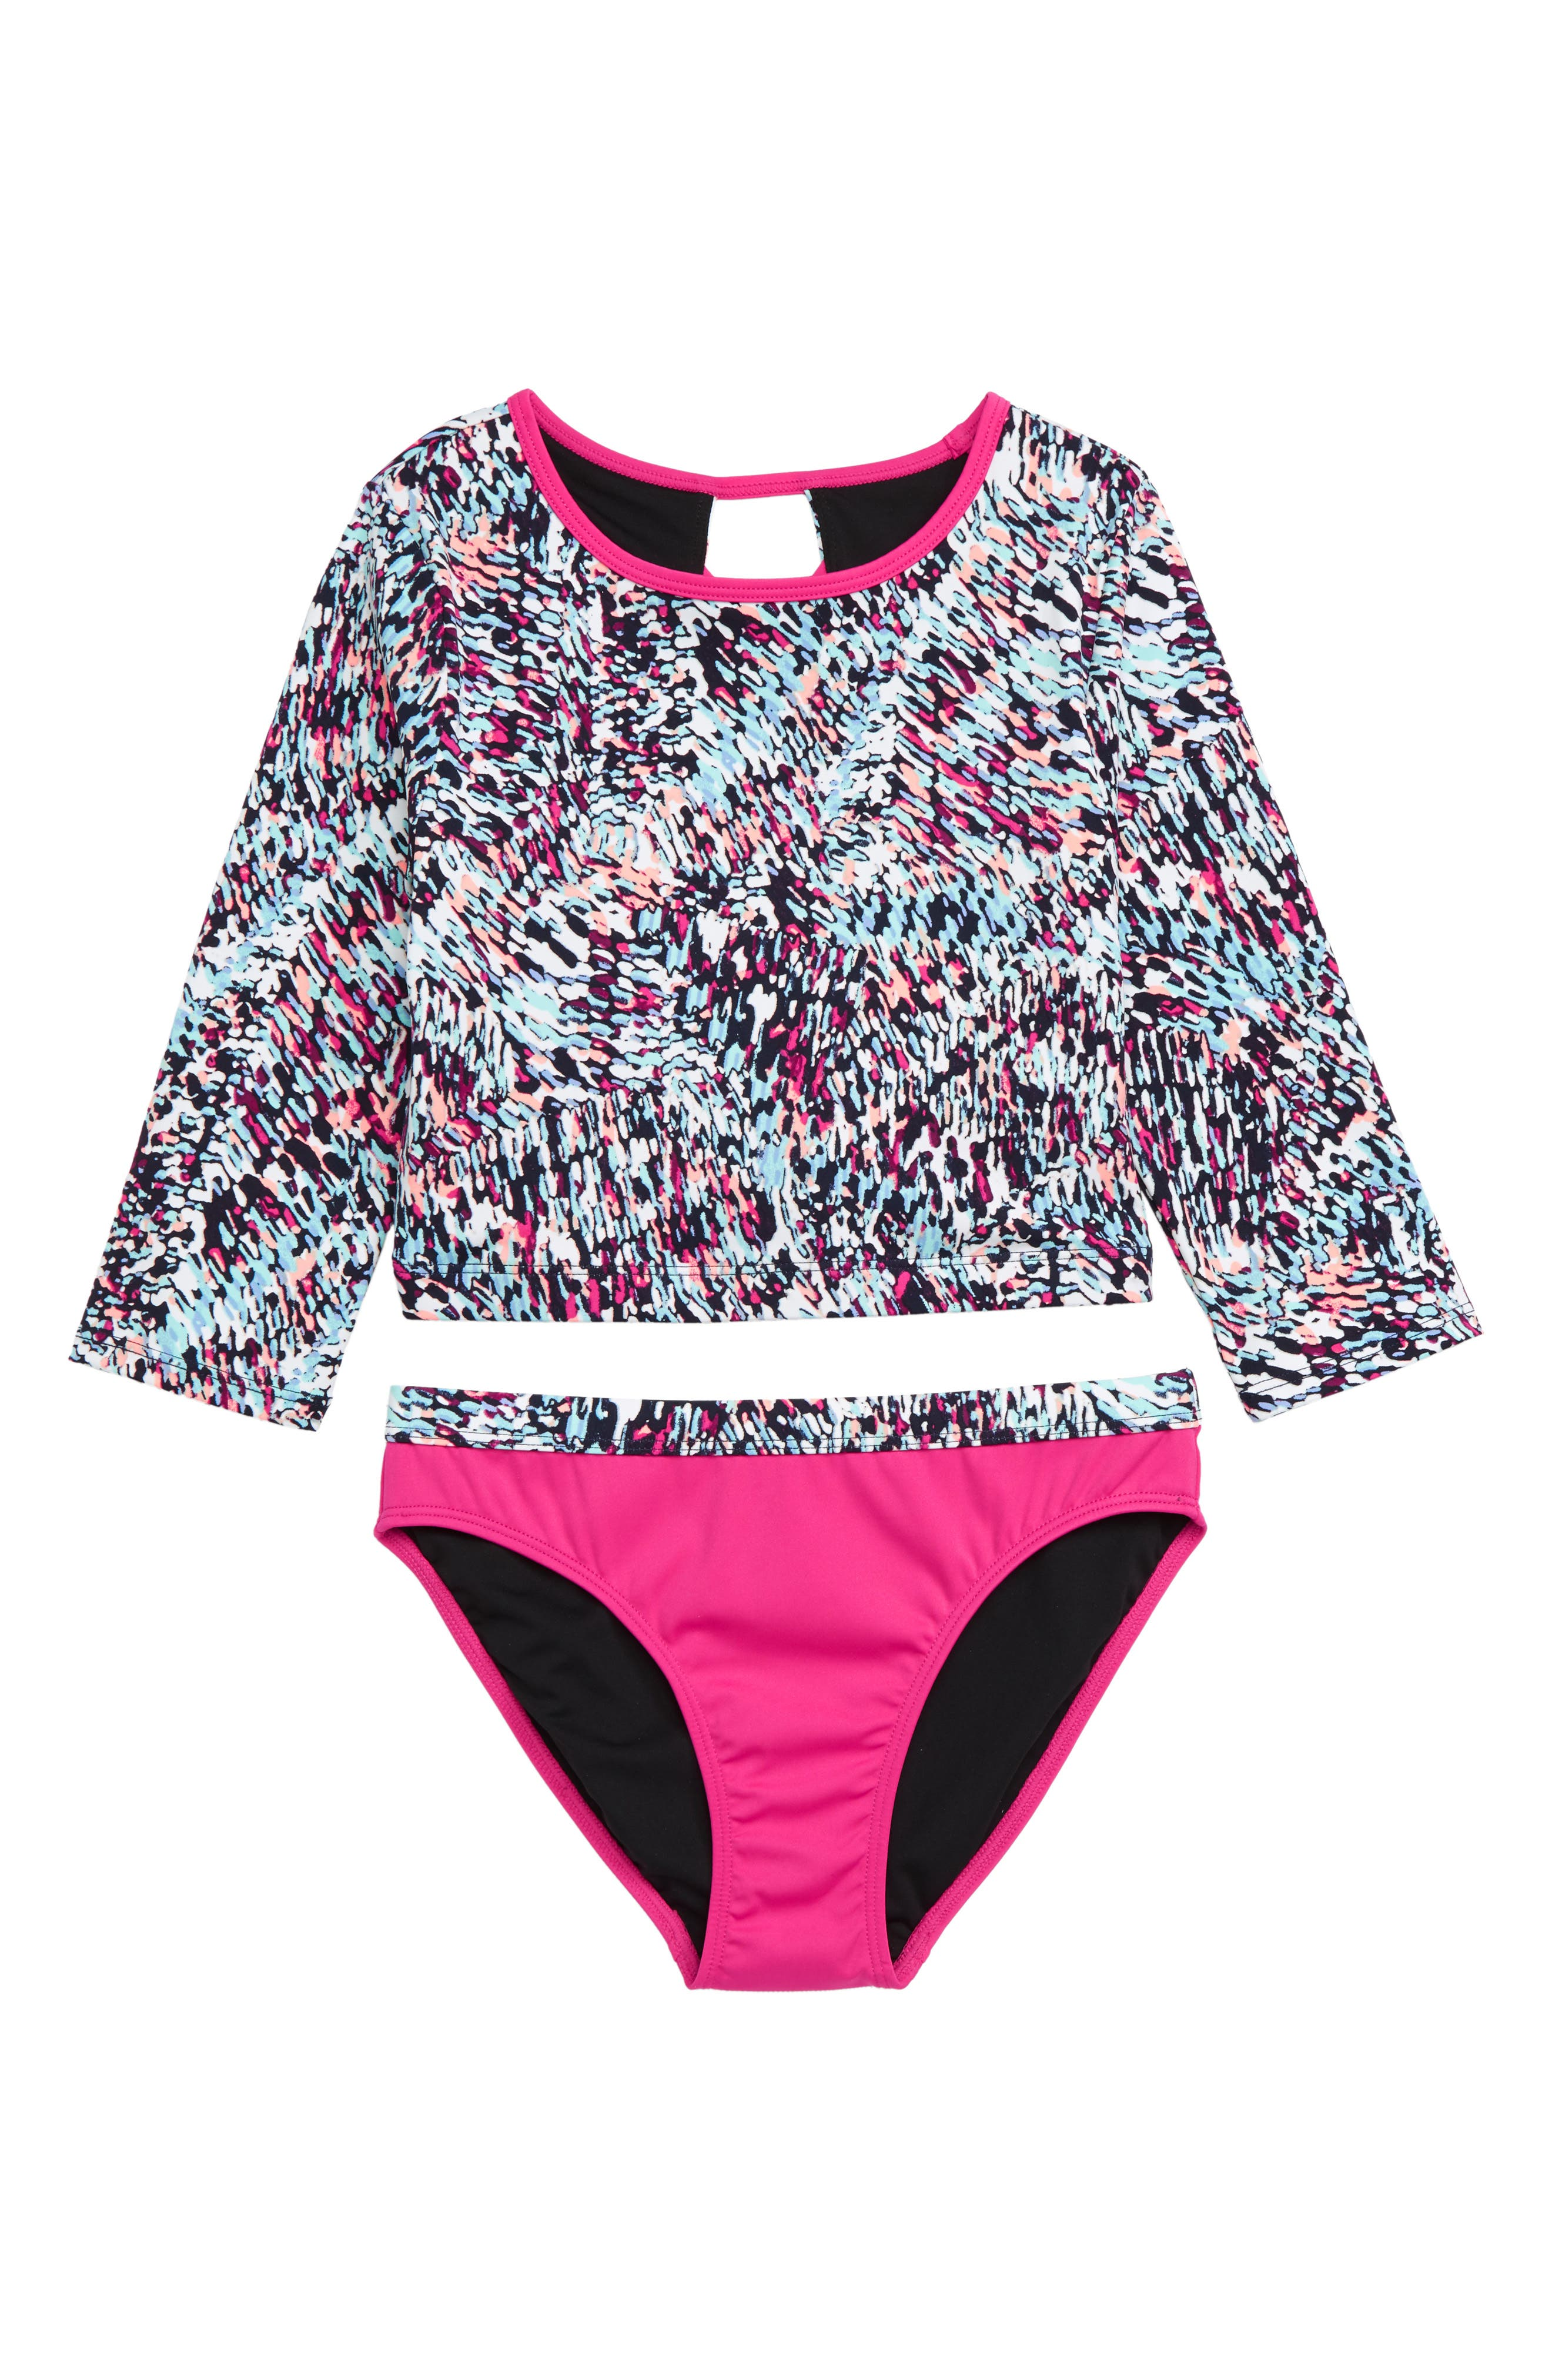 Scoop Two-Piece Rashguard Swimsuit,                             Main thumbnail 1, color,                             WHITE MULTI CONFETTI SPRINKLES